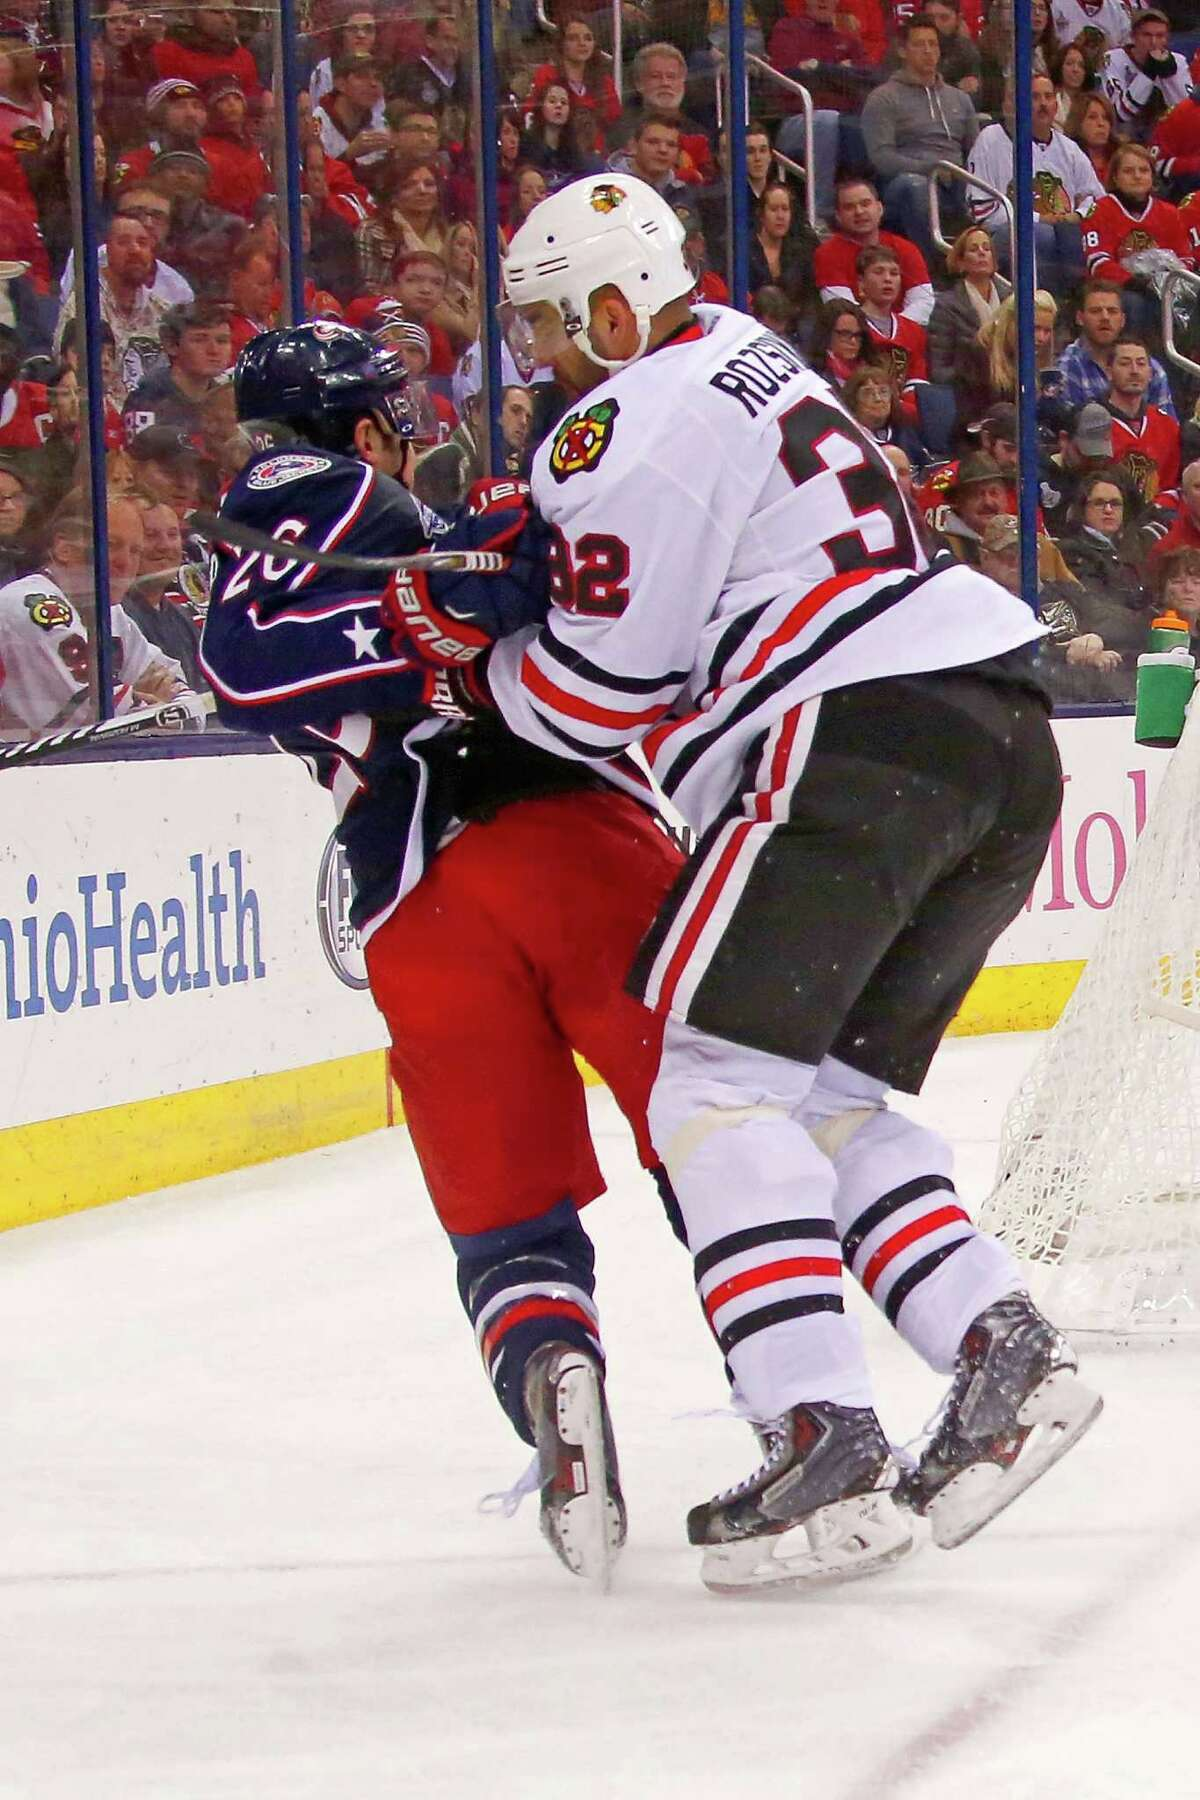 COLUMBUS, OH - DECEMBER 20: Michal Rozsival #32 of the Chicago Blackhawks checks Corey Tropp #26 of the Columbus Blue Jackets during the second period on December 20, 2014 at Nationwide Arena in Columbus, Ohio. (Photo by Kirk Irwin/Getty Images) ORG XMIT: 507048377